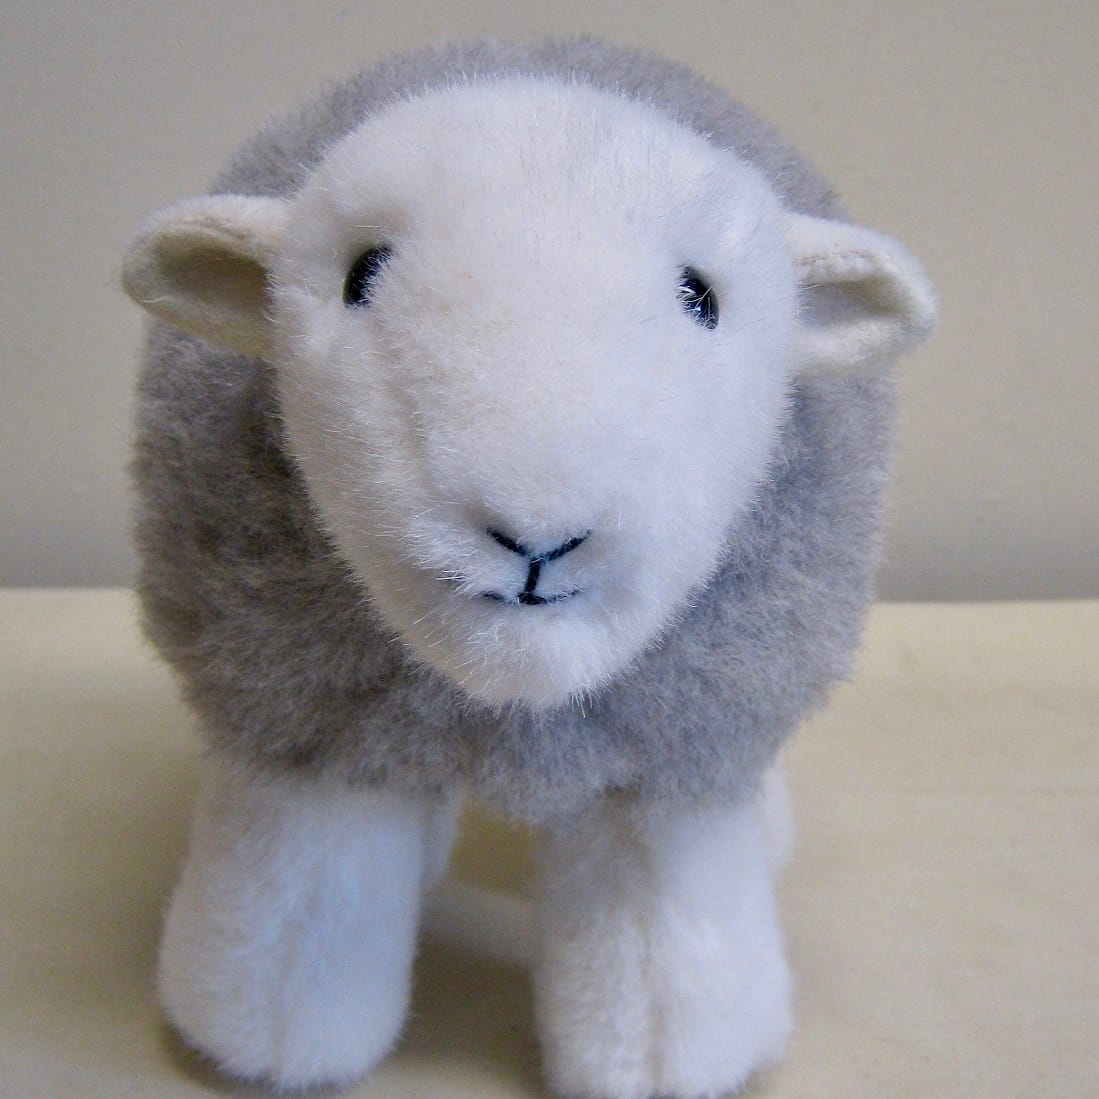 Bigger prototype of the original My Herdy